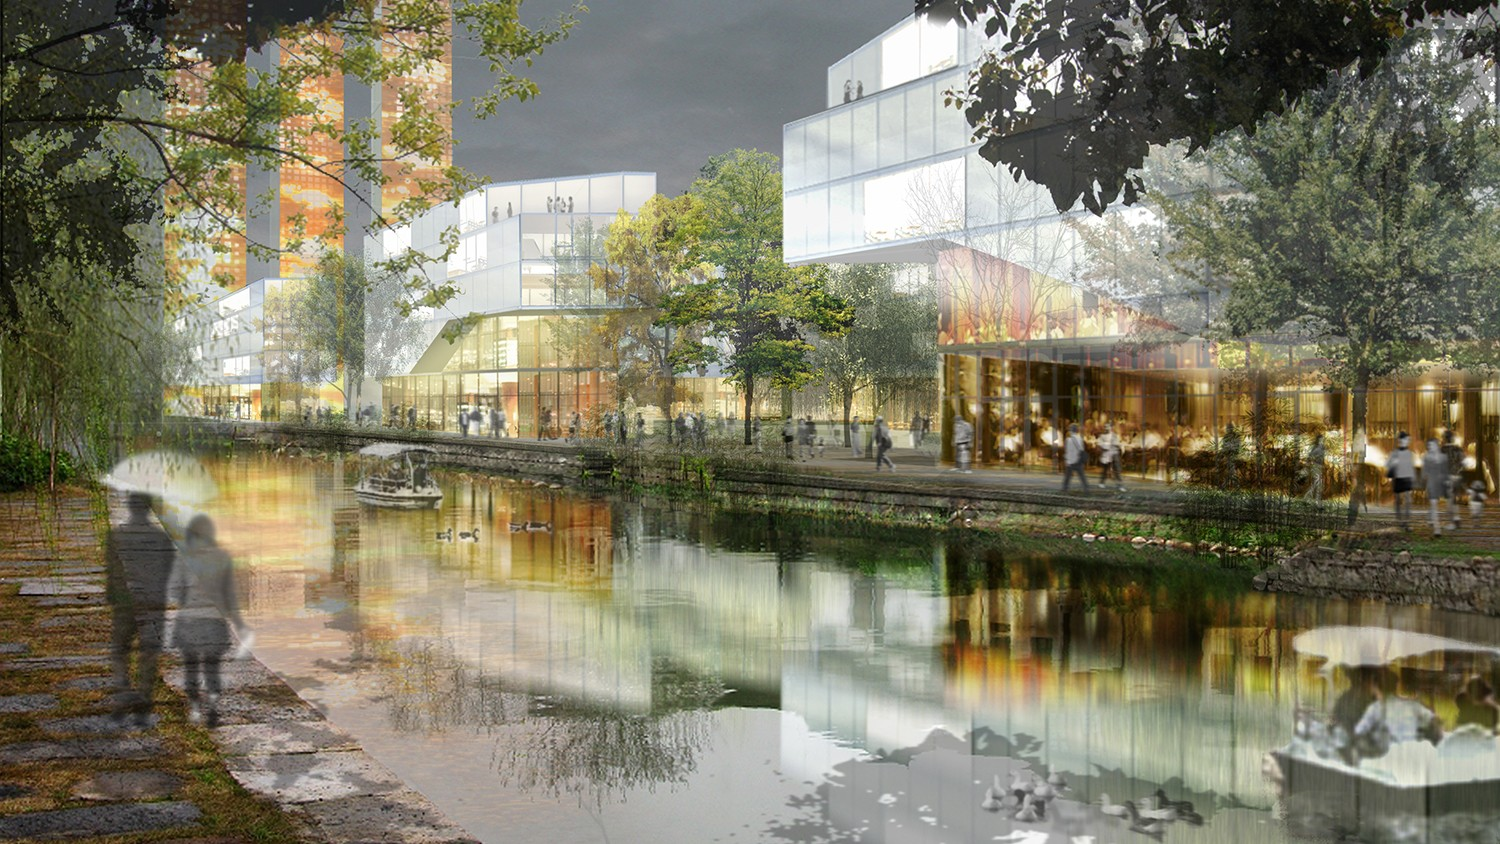 https://stevenholl.sfo2.digitaloceanspaces.com/uploads/projects/project-images/StevenHollArchitects_ShanShui_spreaders existing canal_v3_Gary_WH.jpg